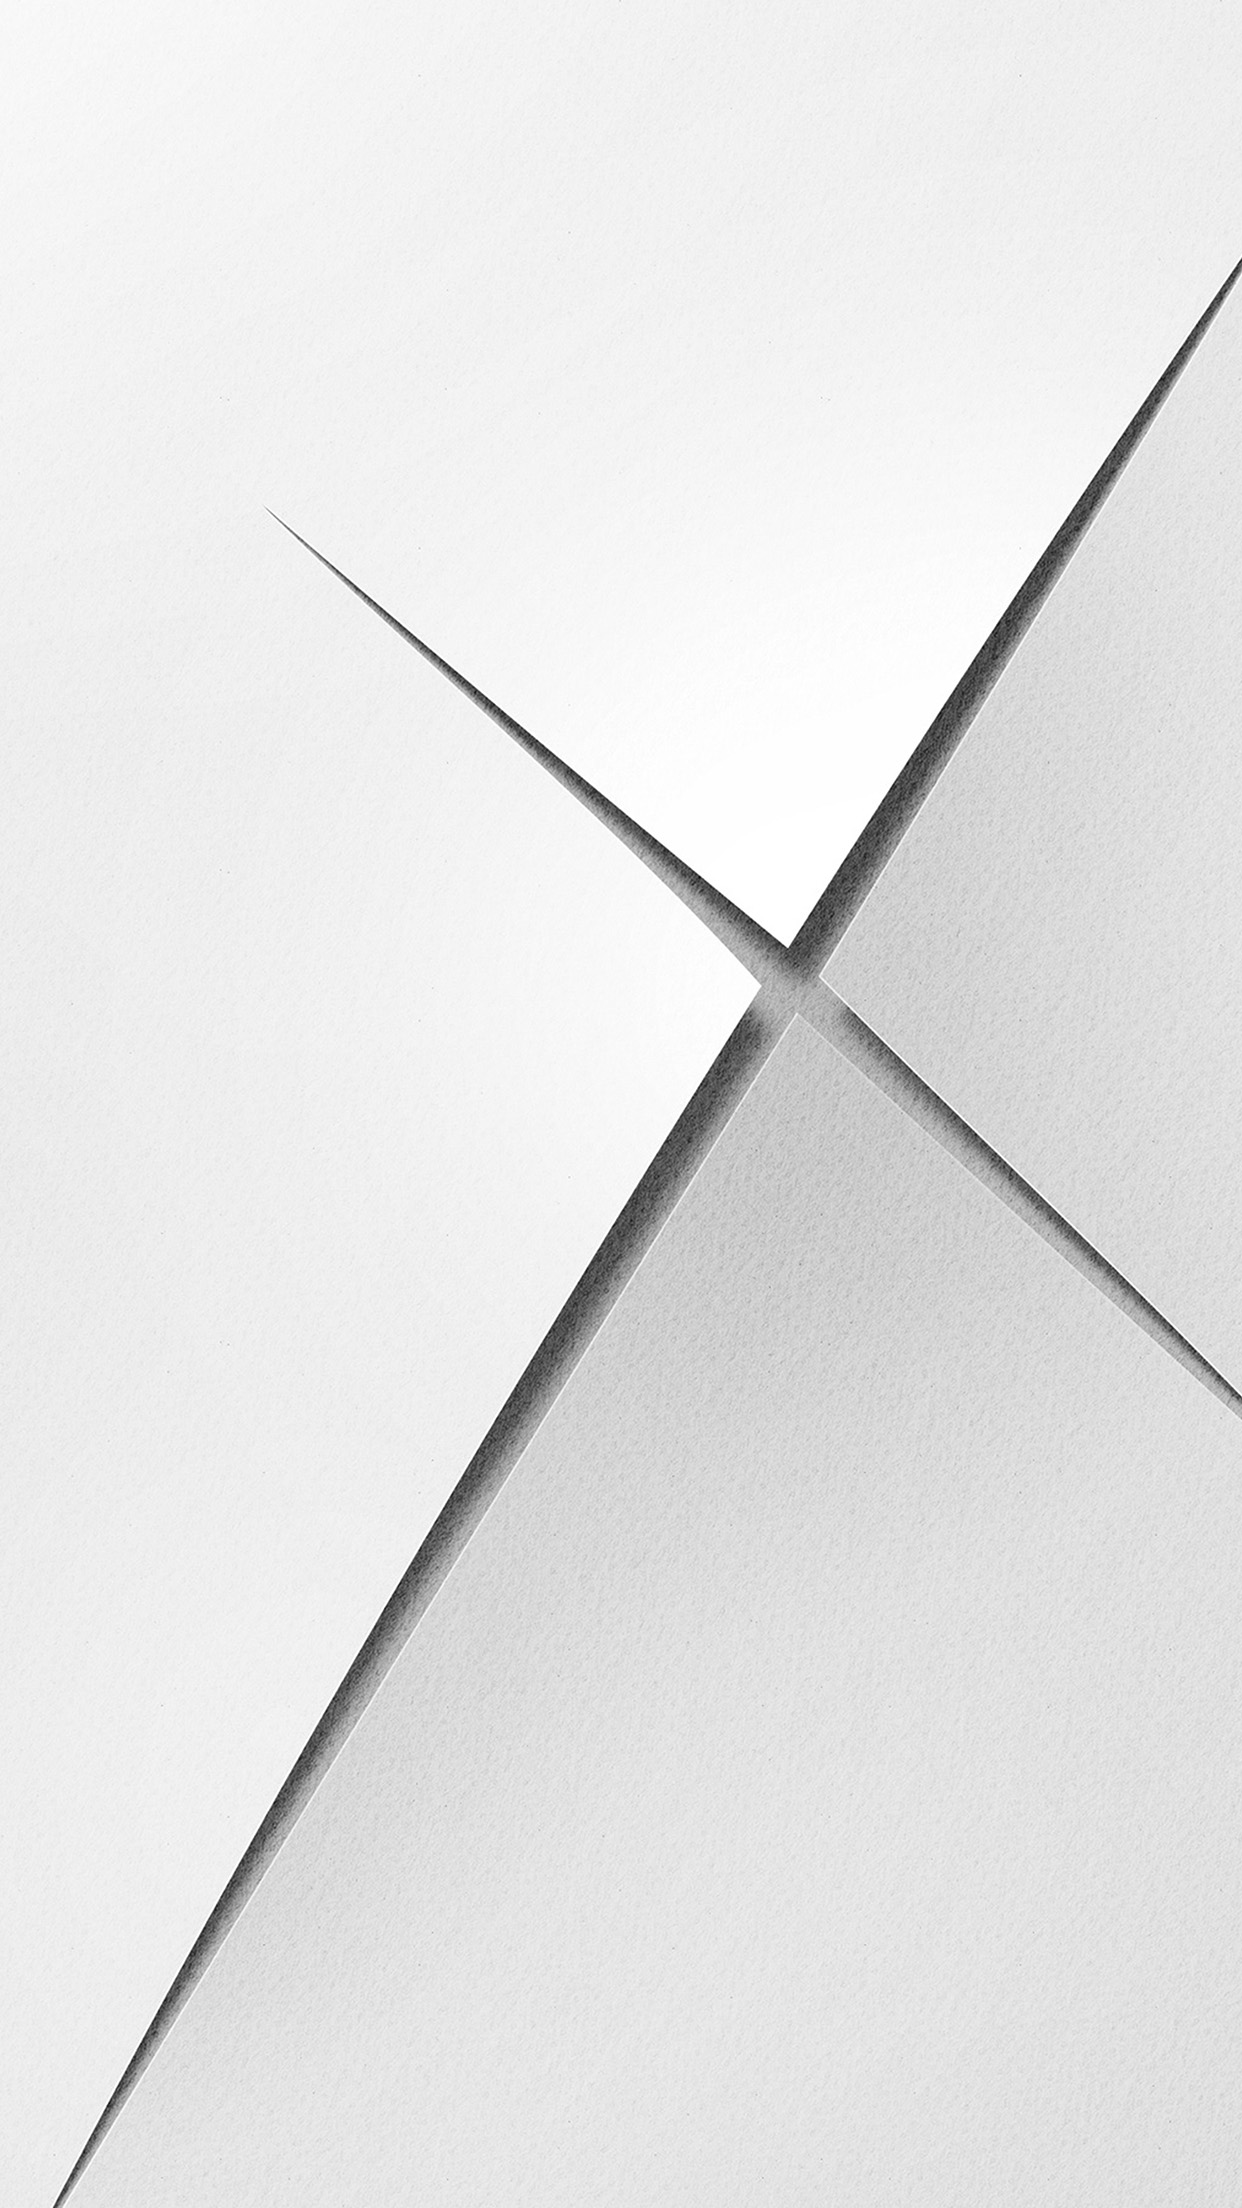 iPhone7papers com | iPhone7 wallpaper | bh79-white-cut-blank